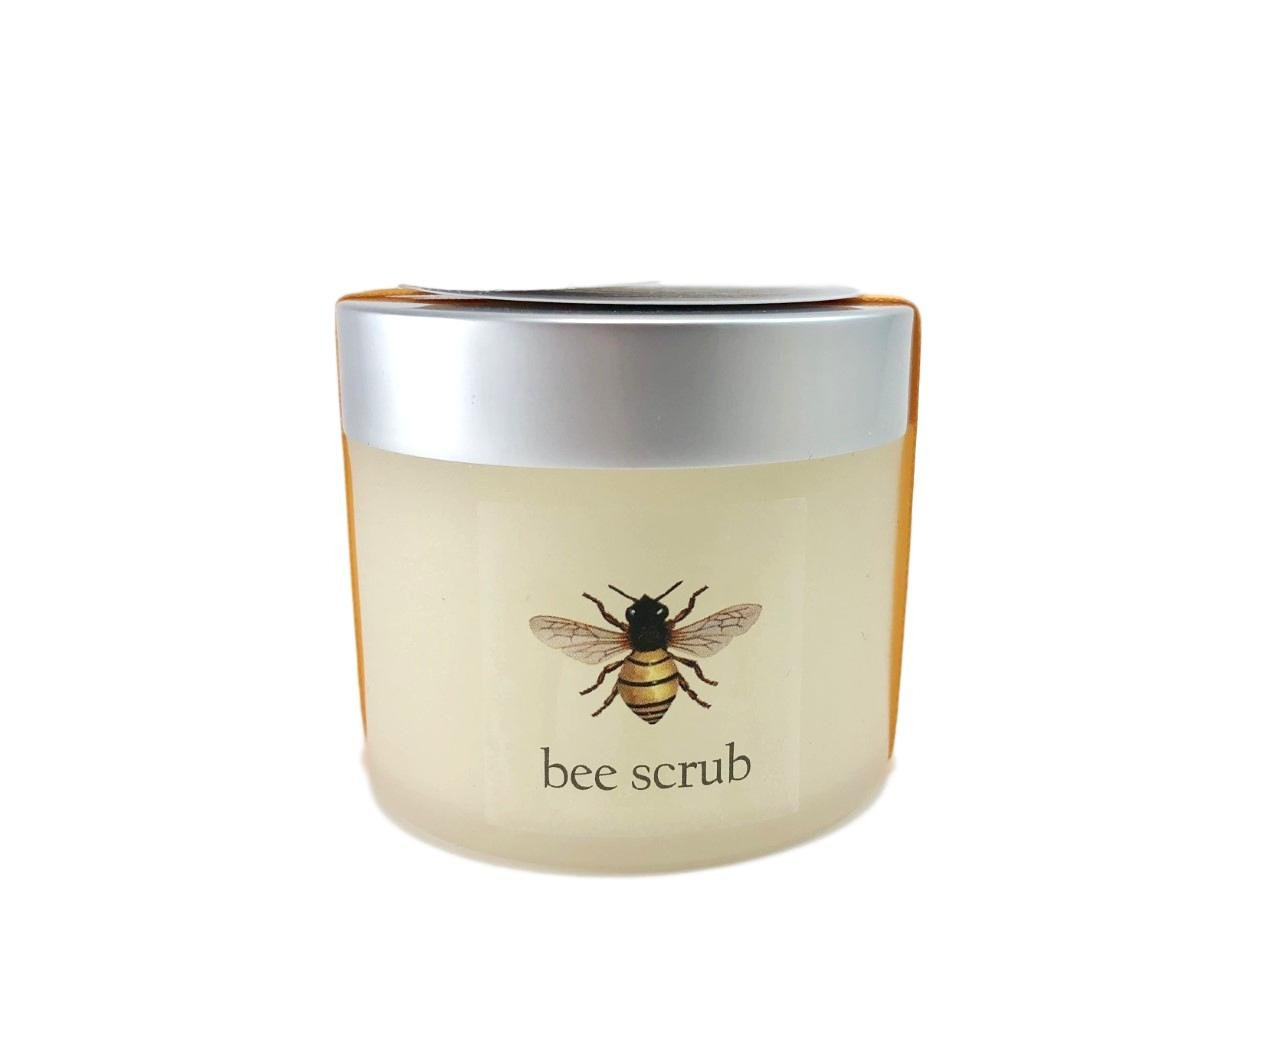 Beeline All Natural Vegetable Sugar and Honey Facial Bee Scrub Exfoliates and Moisturizes